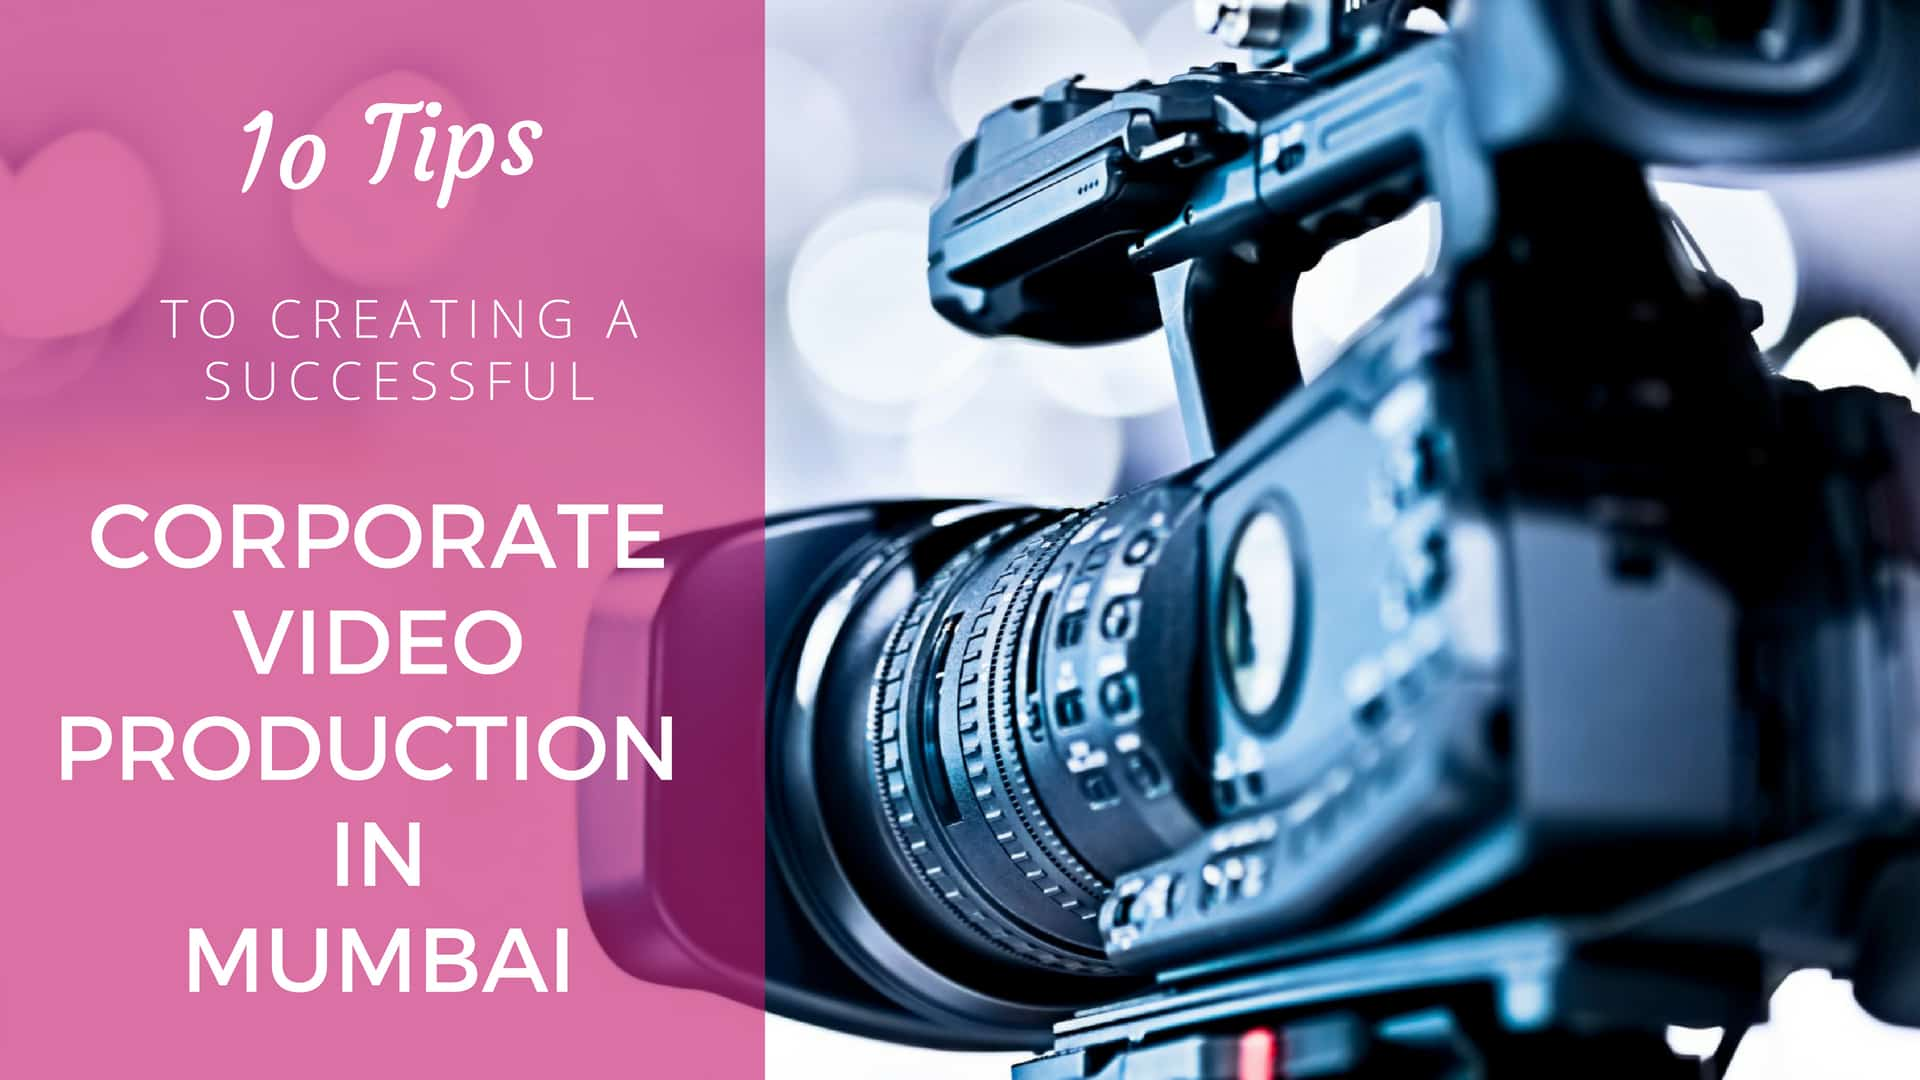 10 Must Know Tips For Creating A Successful Corporate Video Production In Mumbai